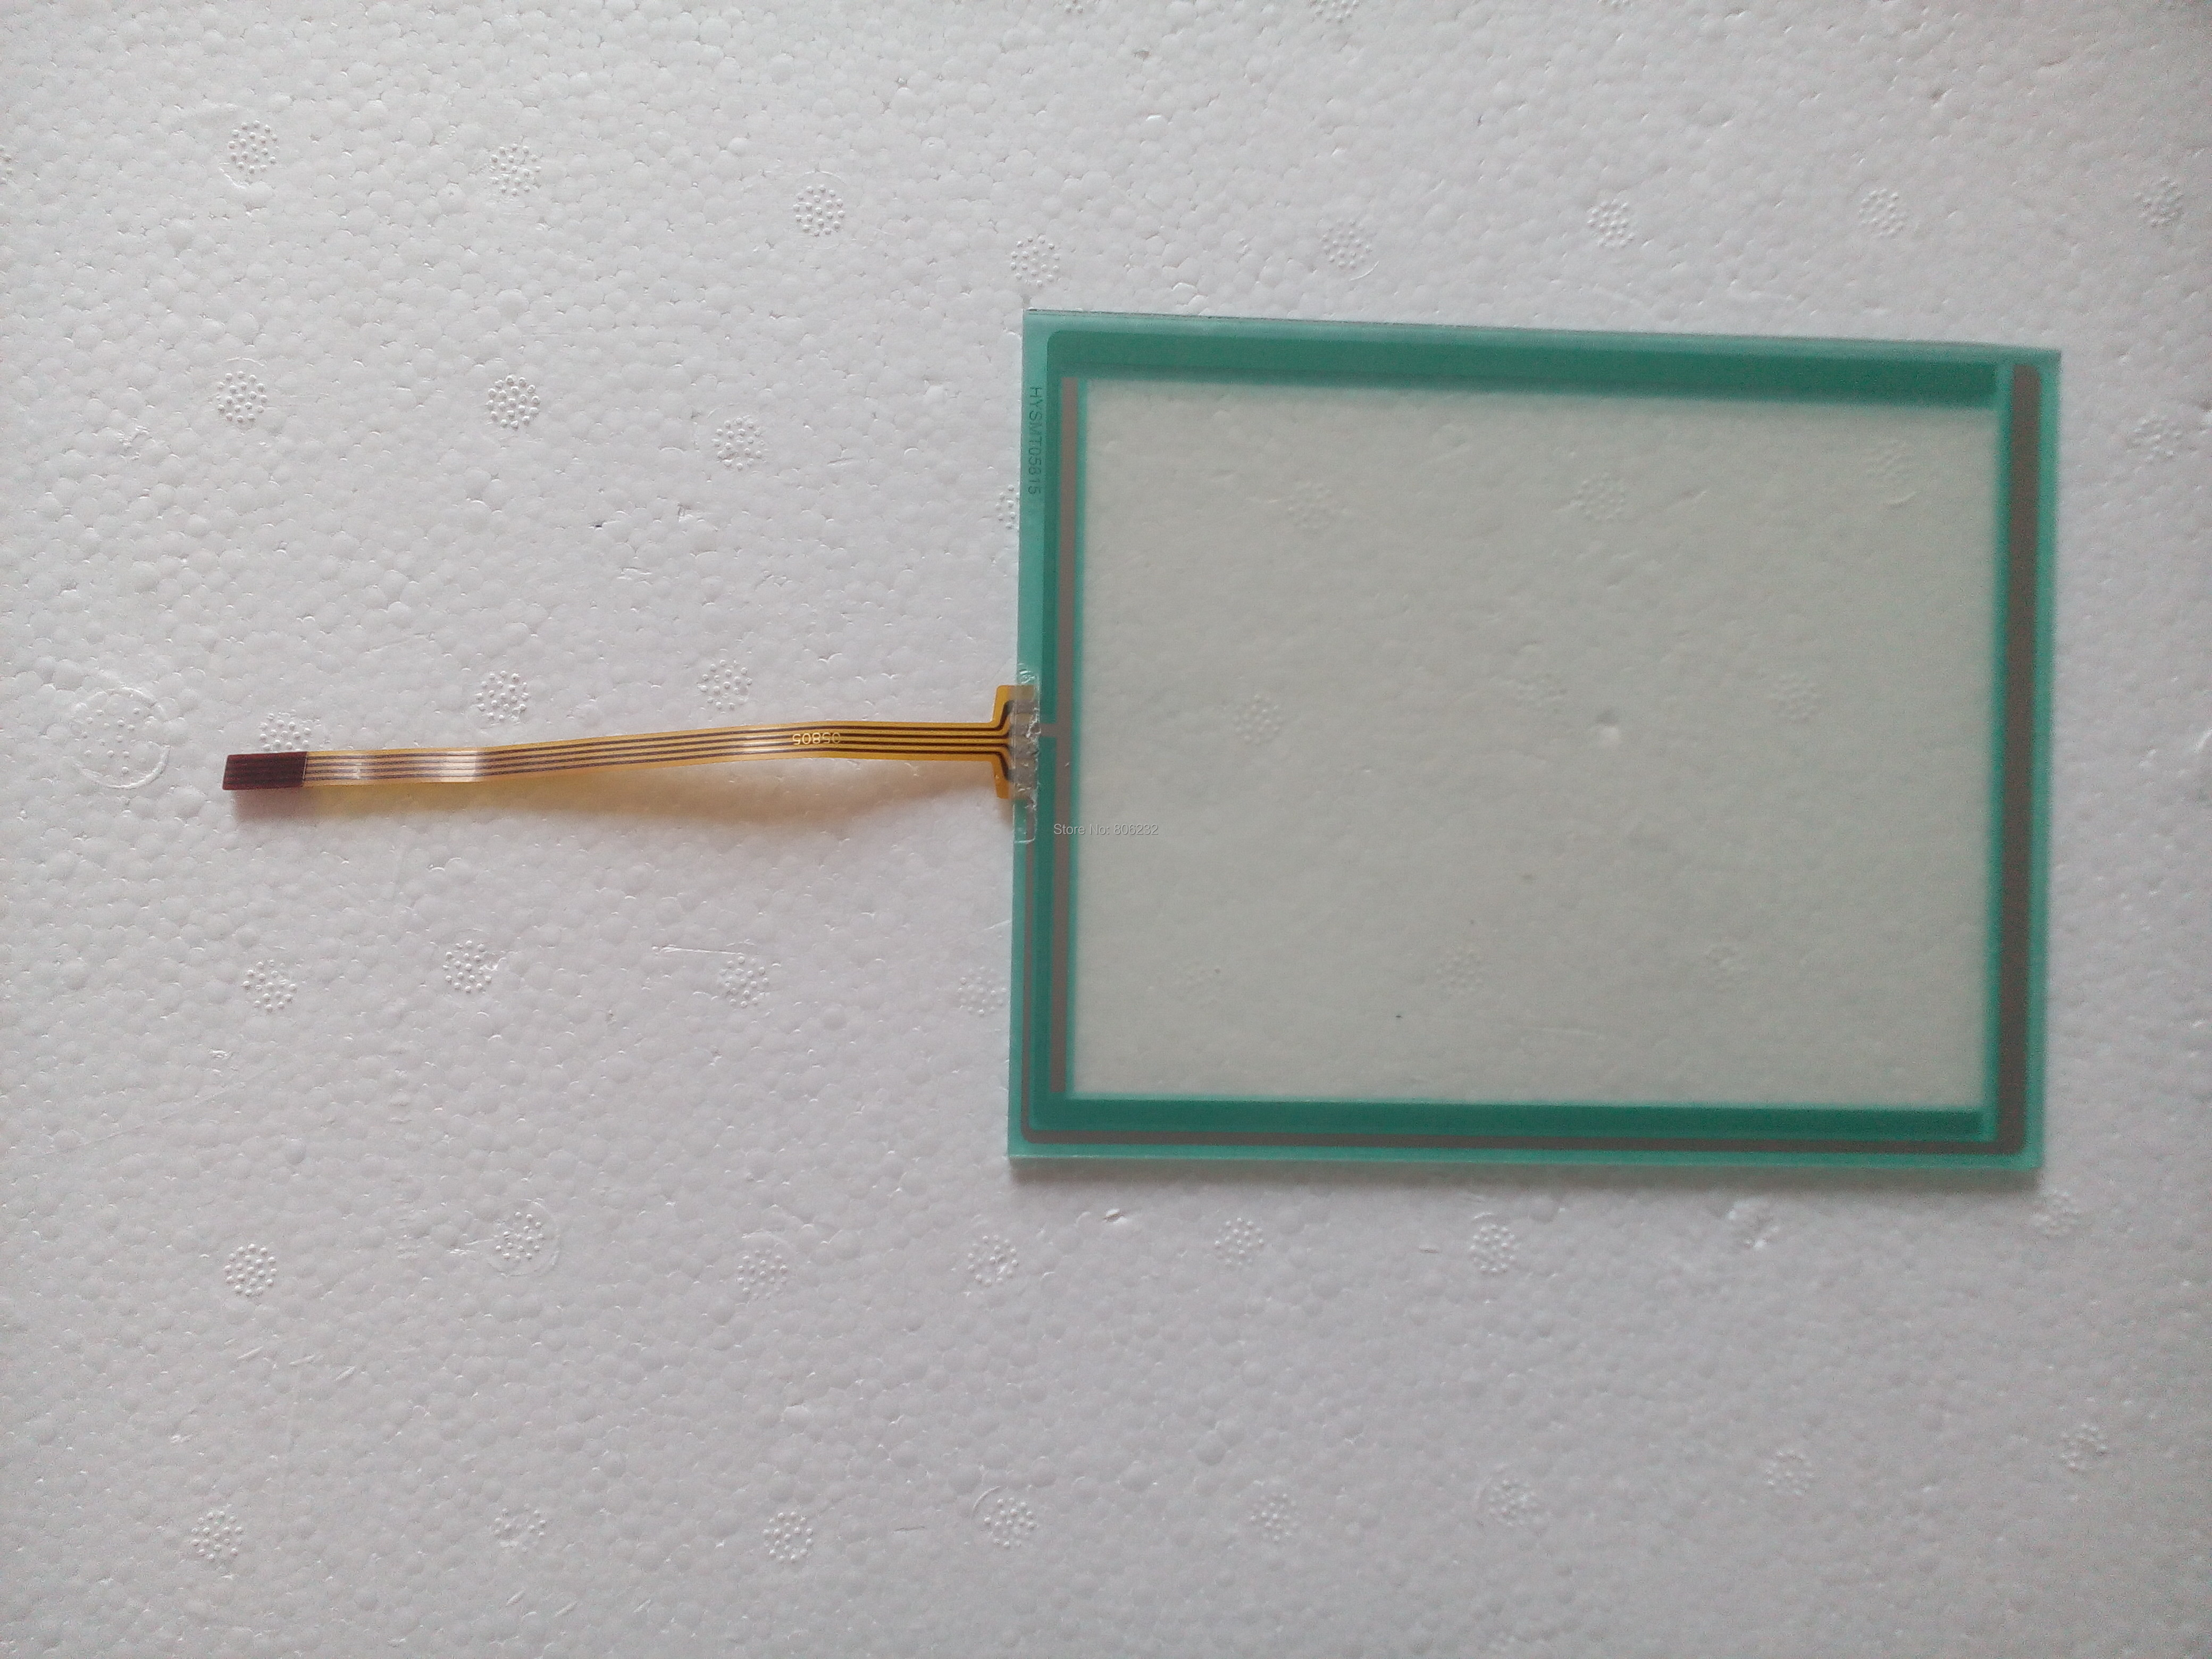 Touch <font><b>panel</b></font> for <font><b>KORG</b></font> <font><b>PA800</b></font> PA2X Pro new touch screen replacement image